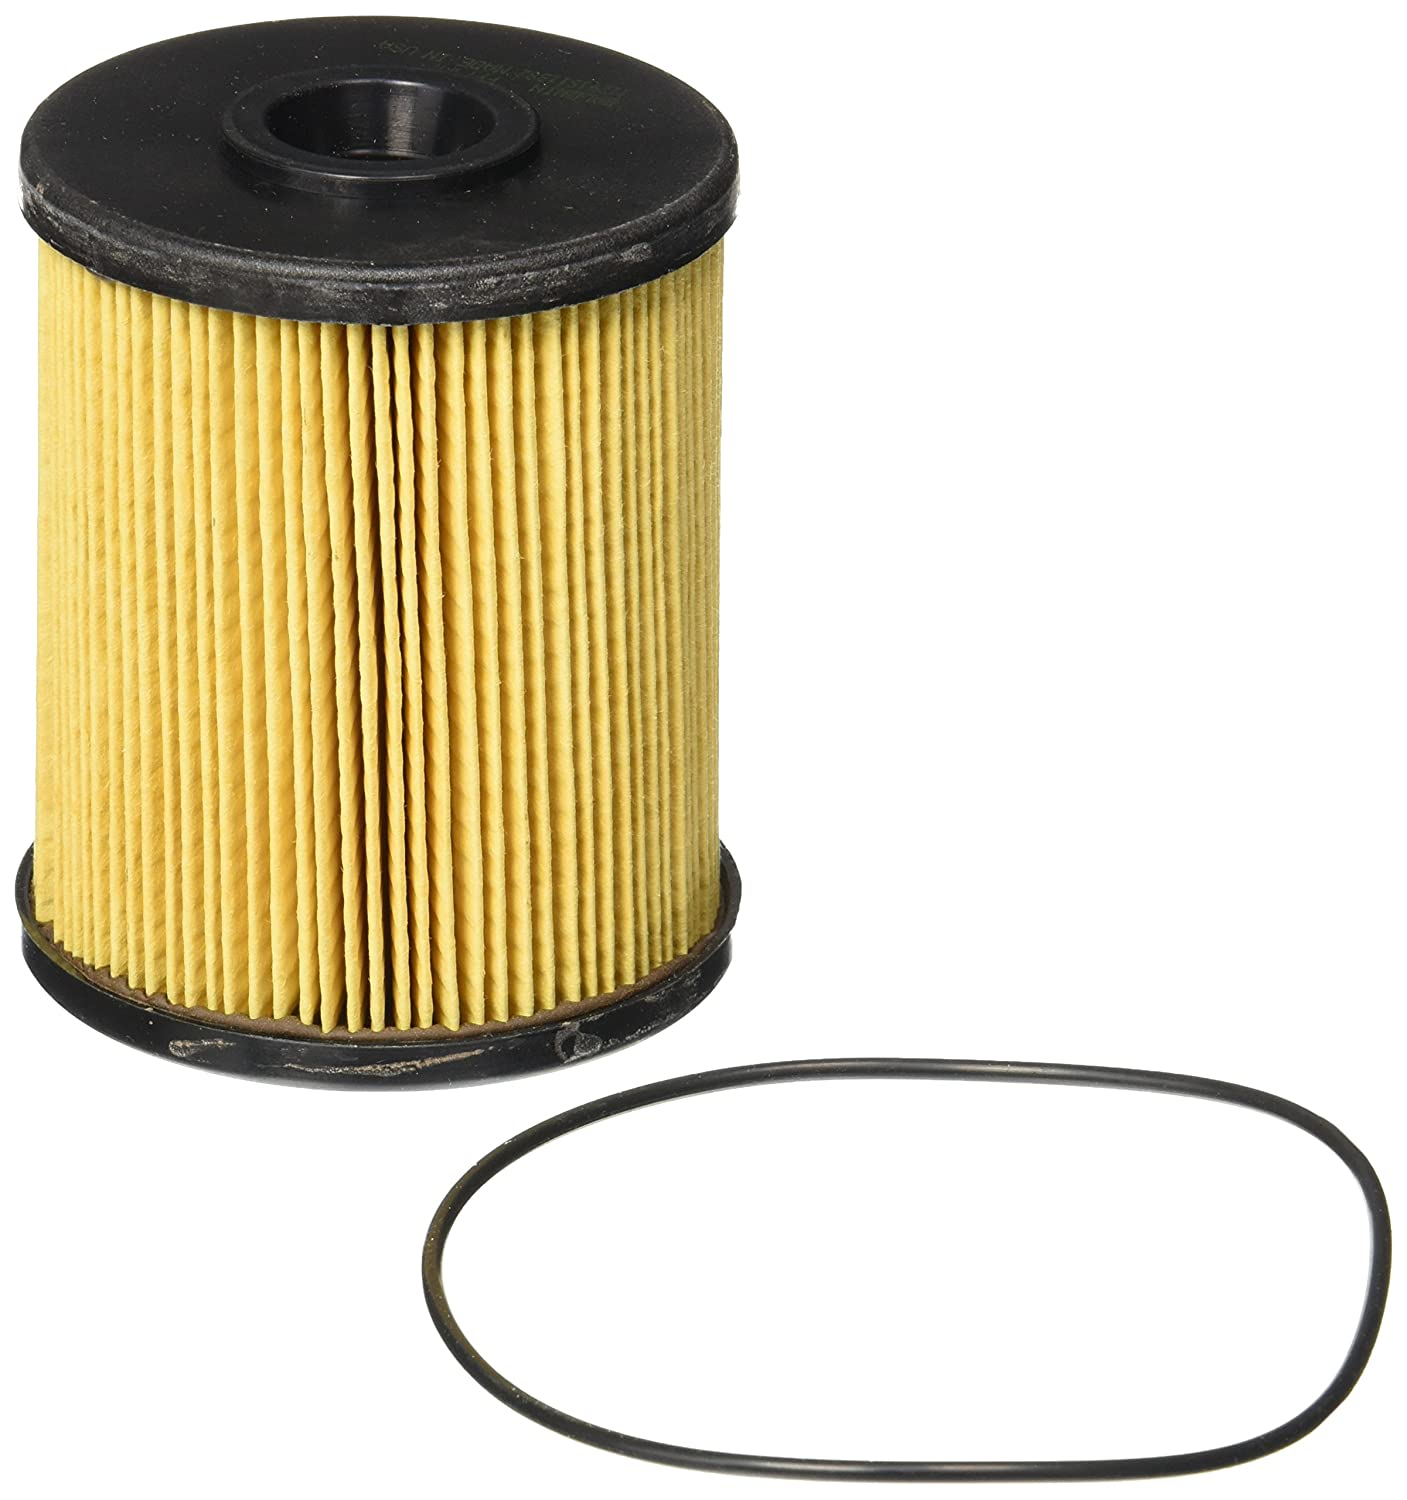 Baldwin Pf7977 Heavy Duty Lube Spin On Filter Automotive 2006 Dodge Ram Fuel Location